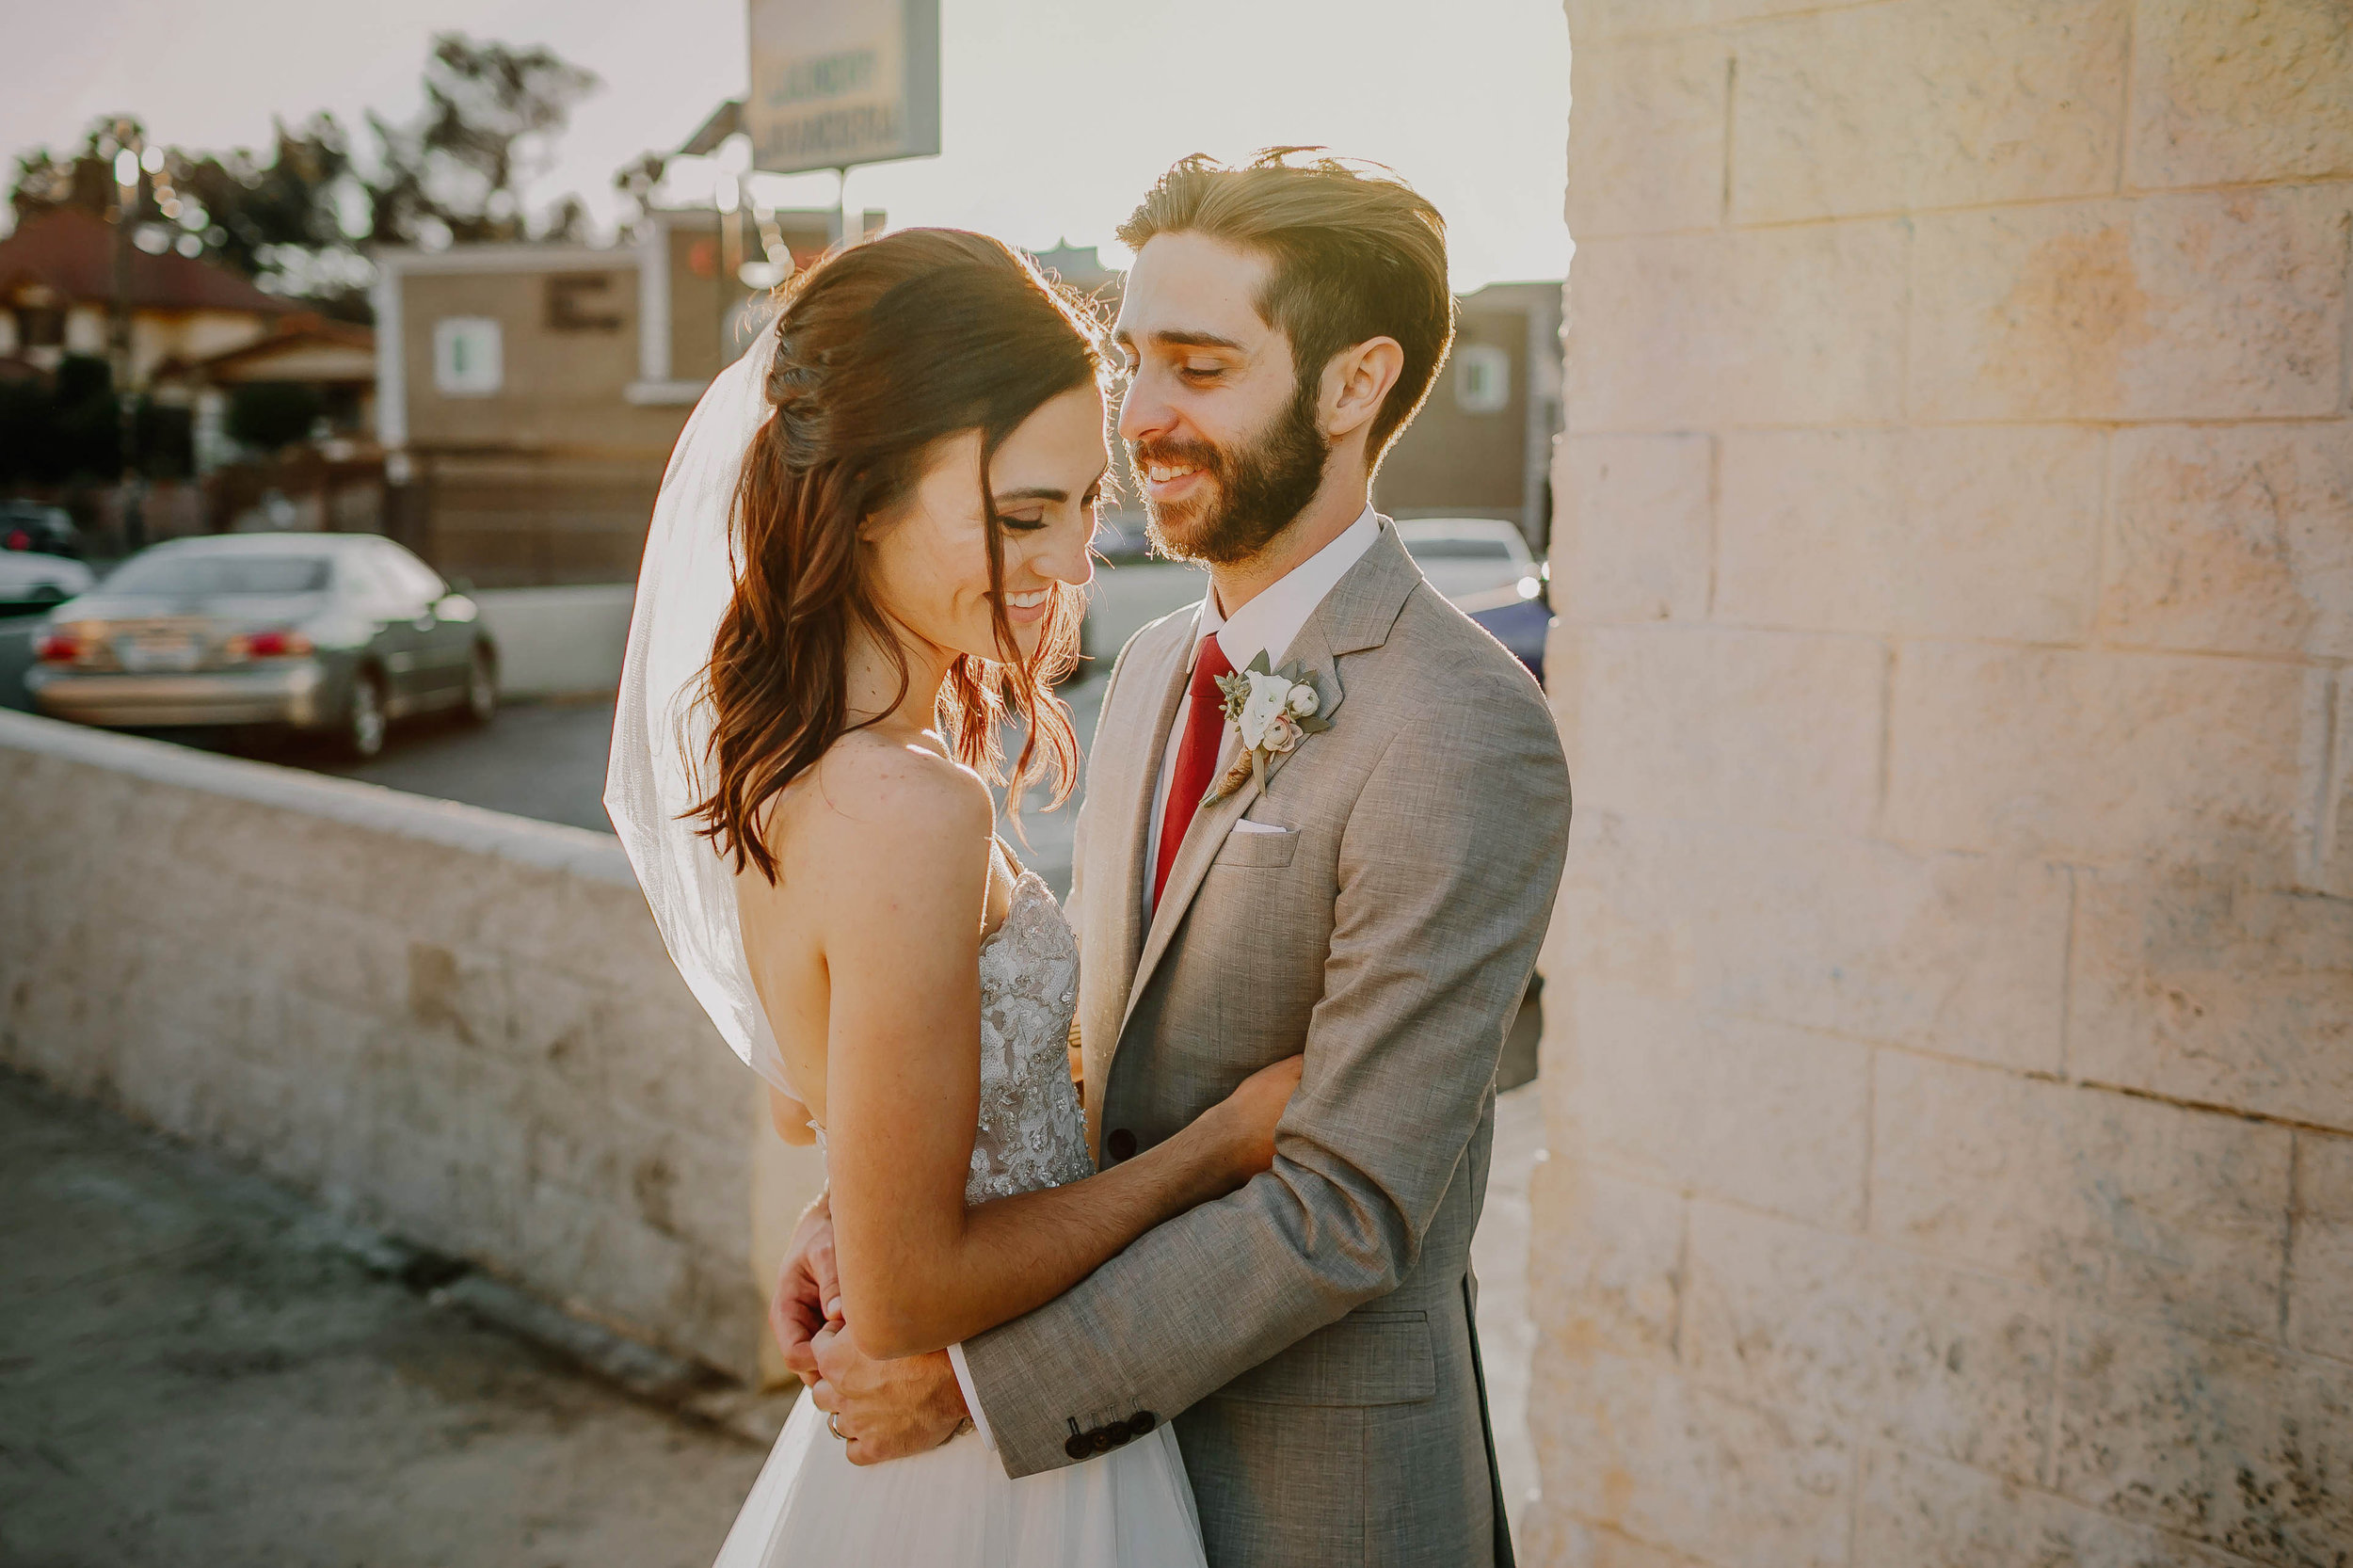 TIFFANY AND EVAN / THE HOLDING CO. LOS ANGELES, CALIFORNIA WEDDING